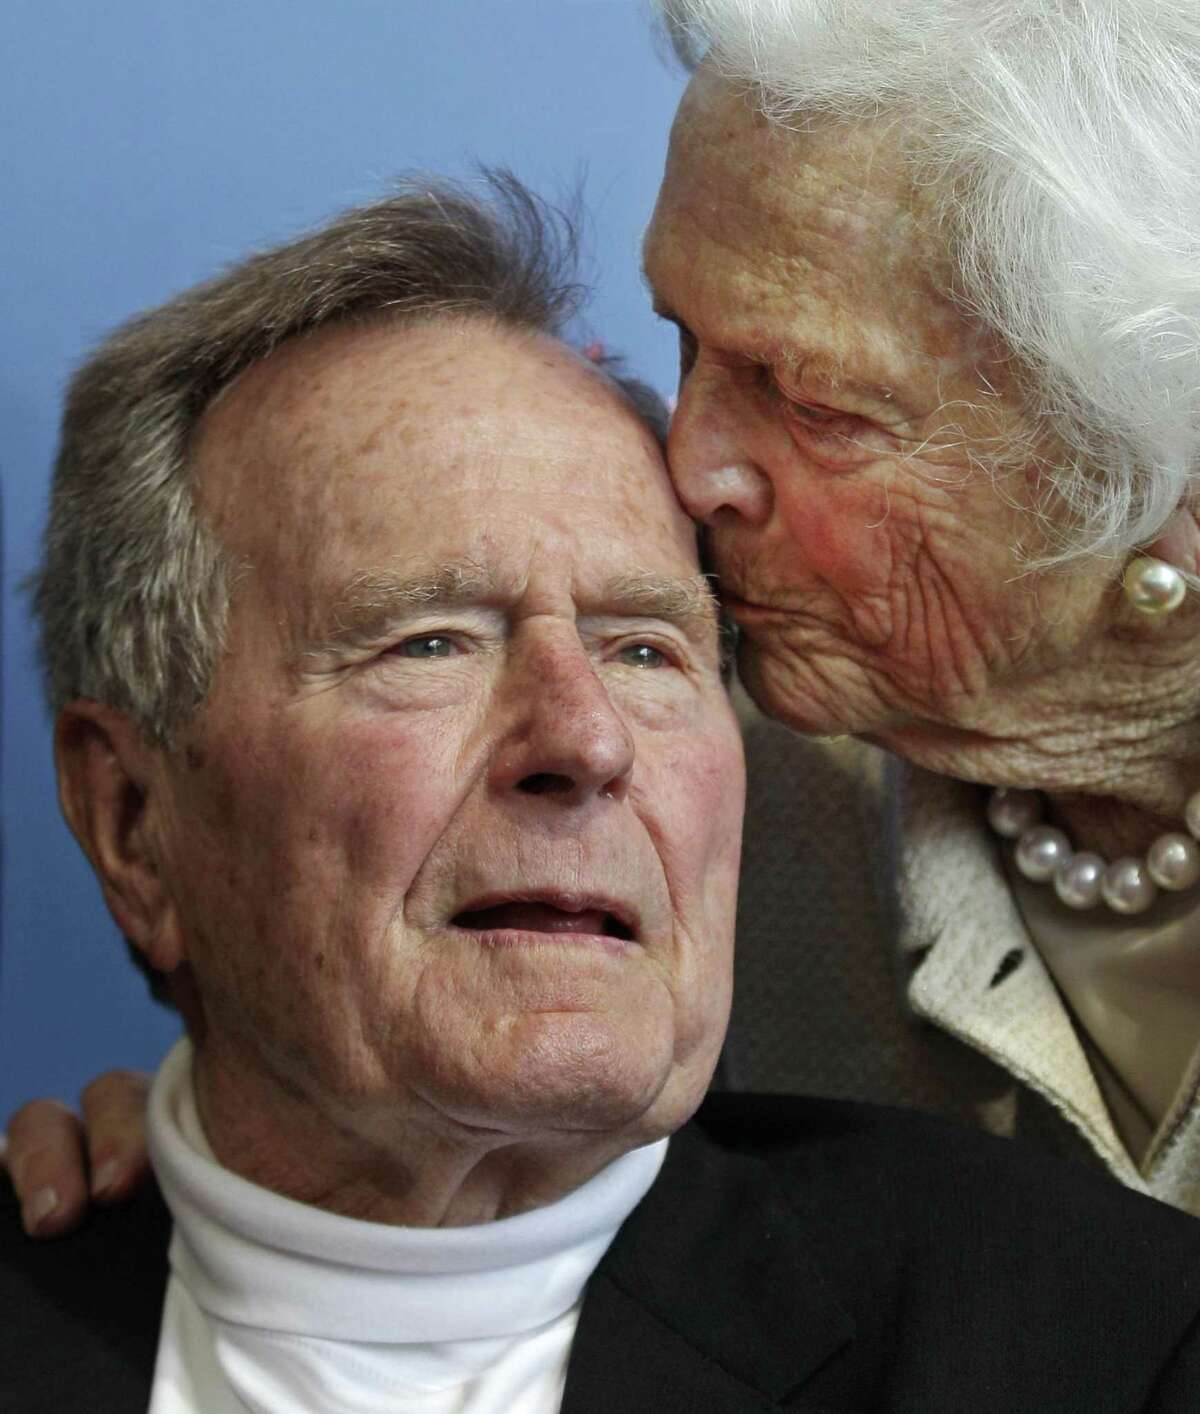 Former President George H.W. Bush, and his wife former first lady Barbara Bush, at premiere of HBO's new documentary on his life in Kennebunkport, Maine in June 2012.